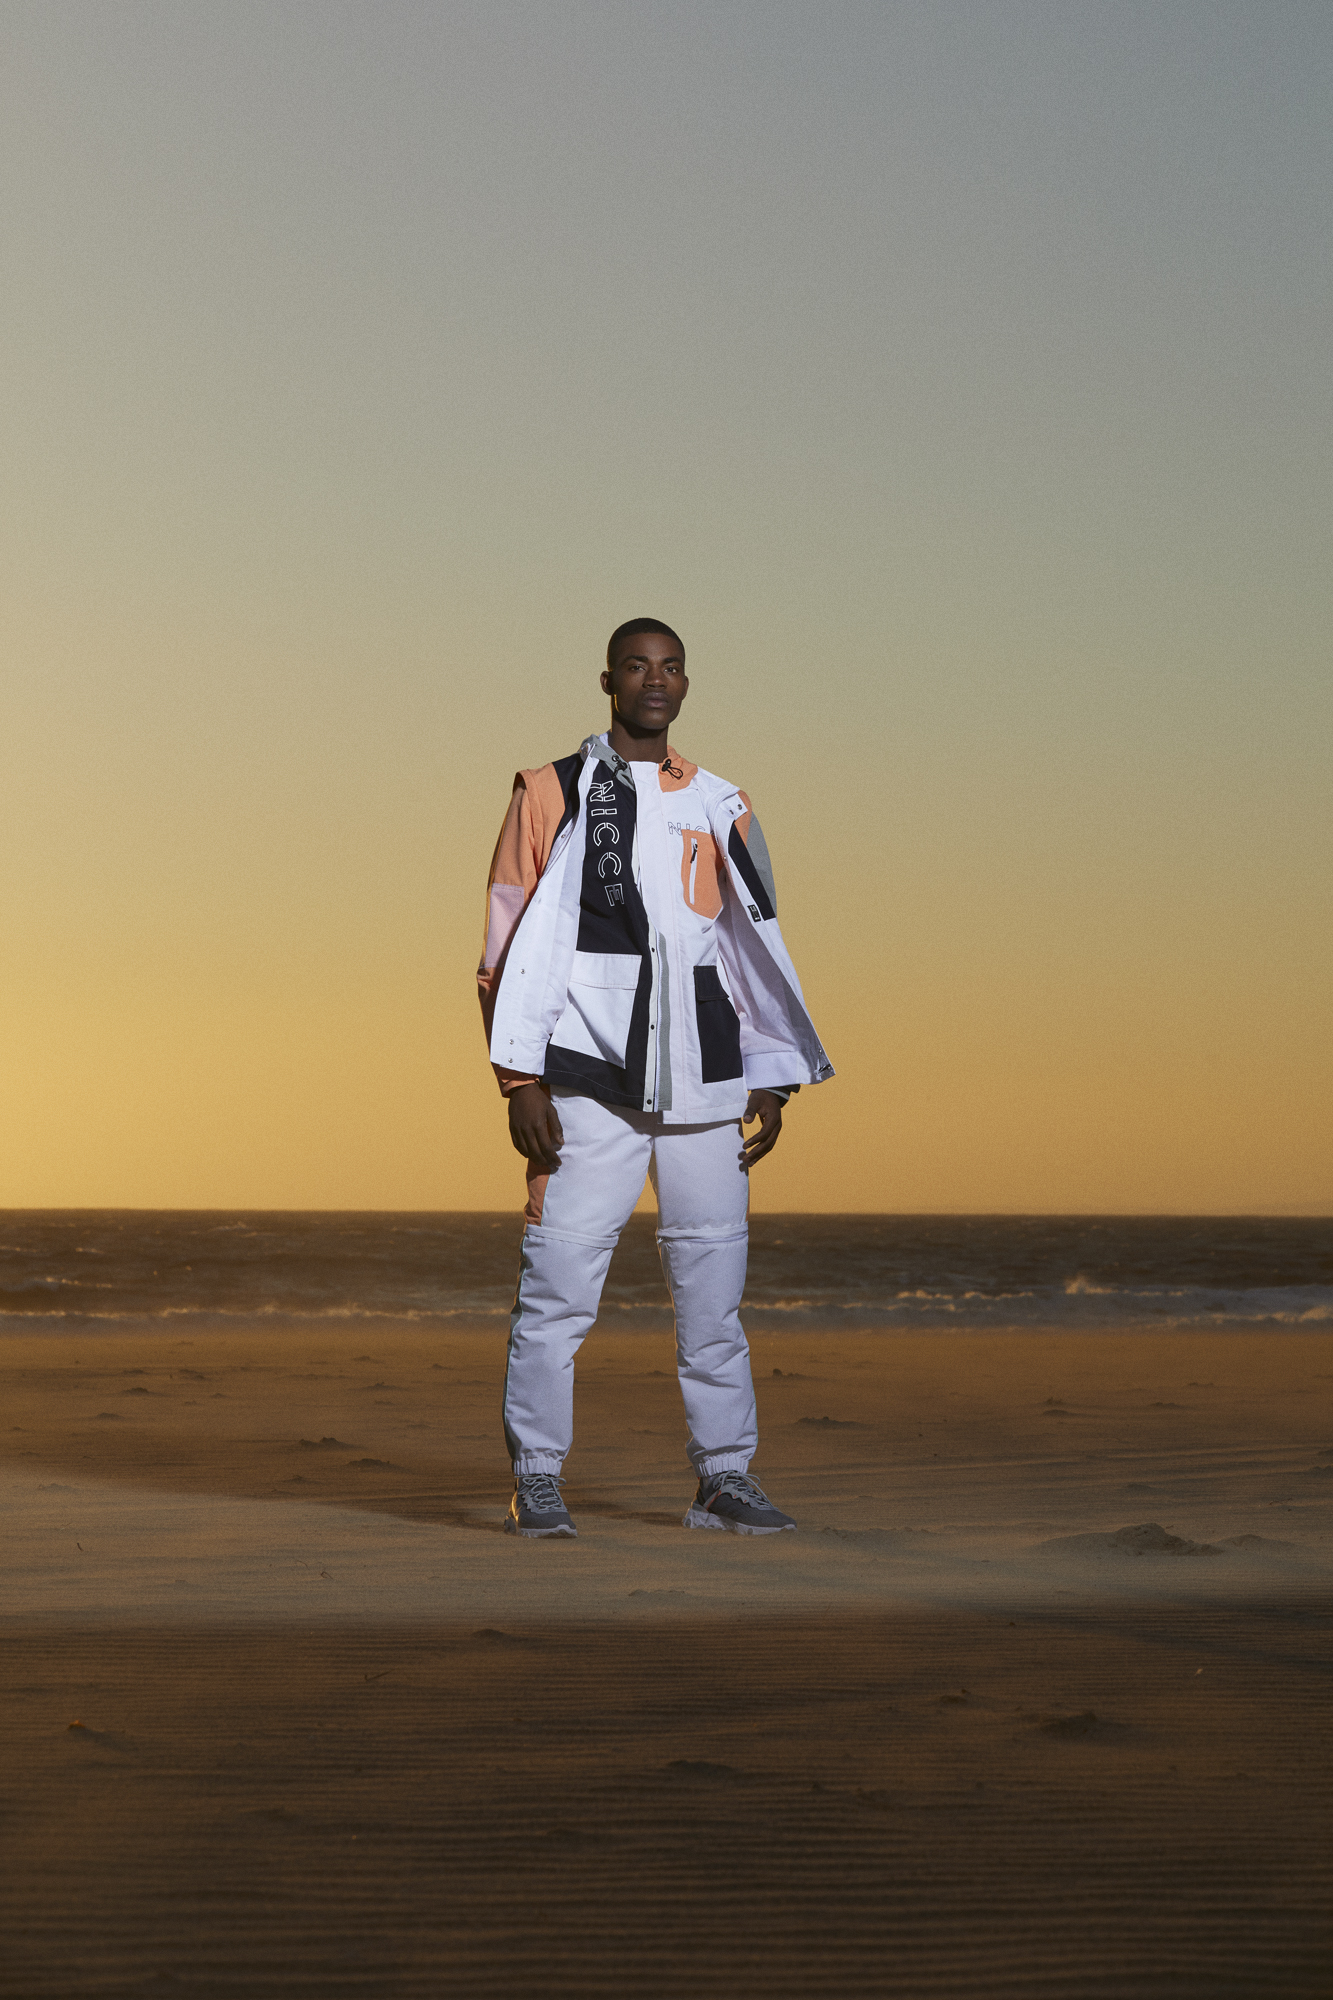 NICCE's new limited edition capsule collection White Label colour-block